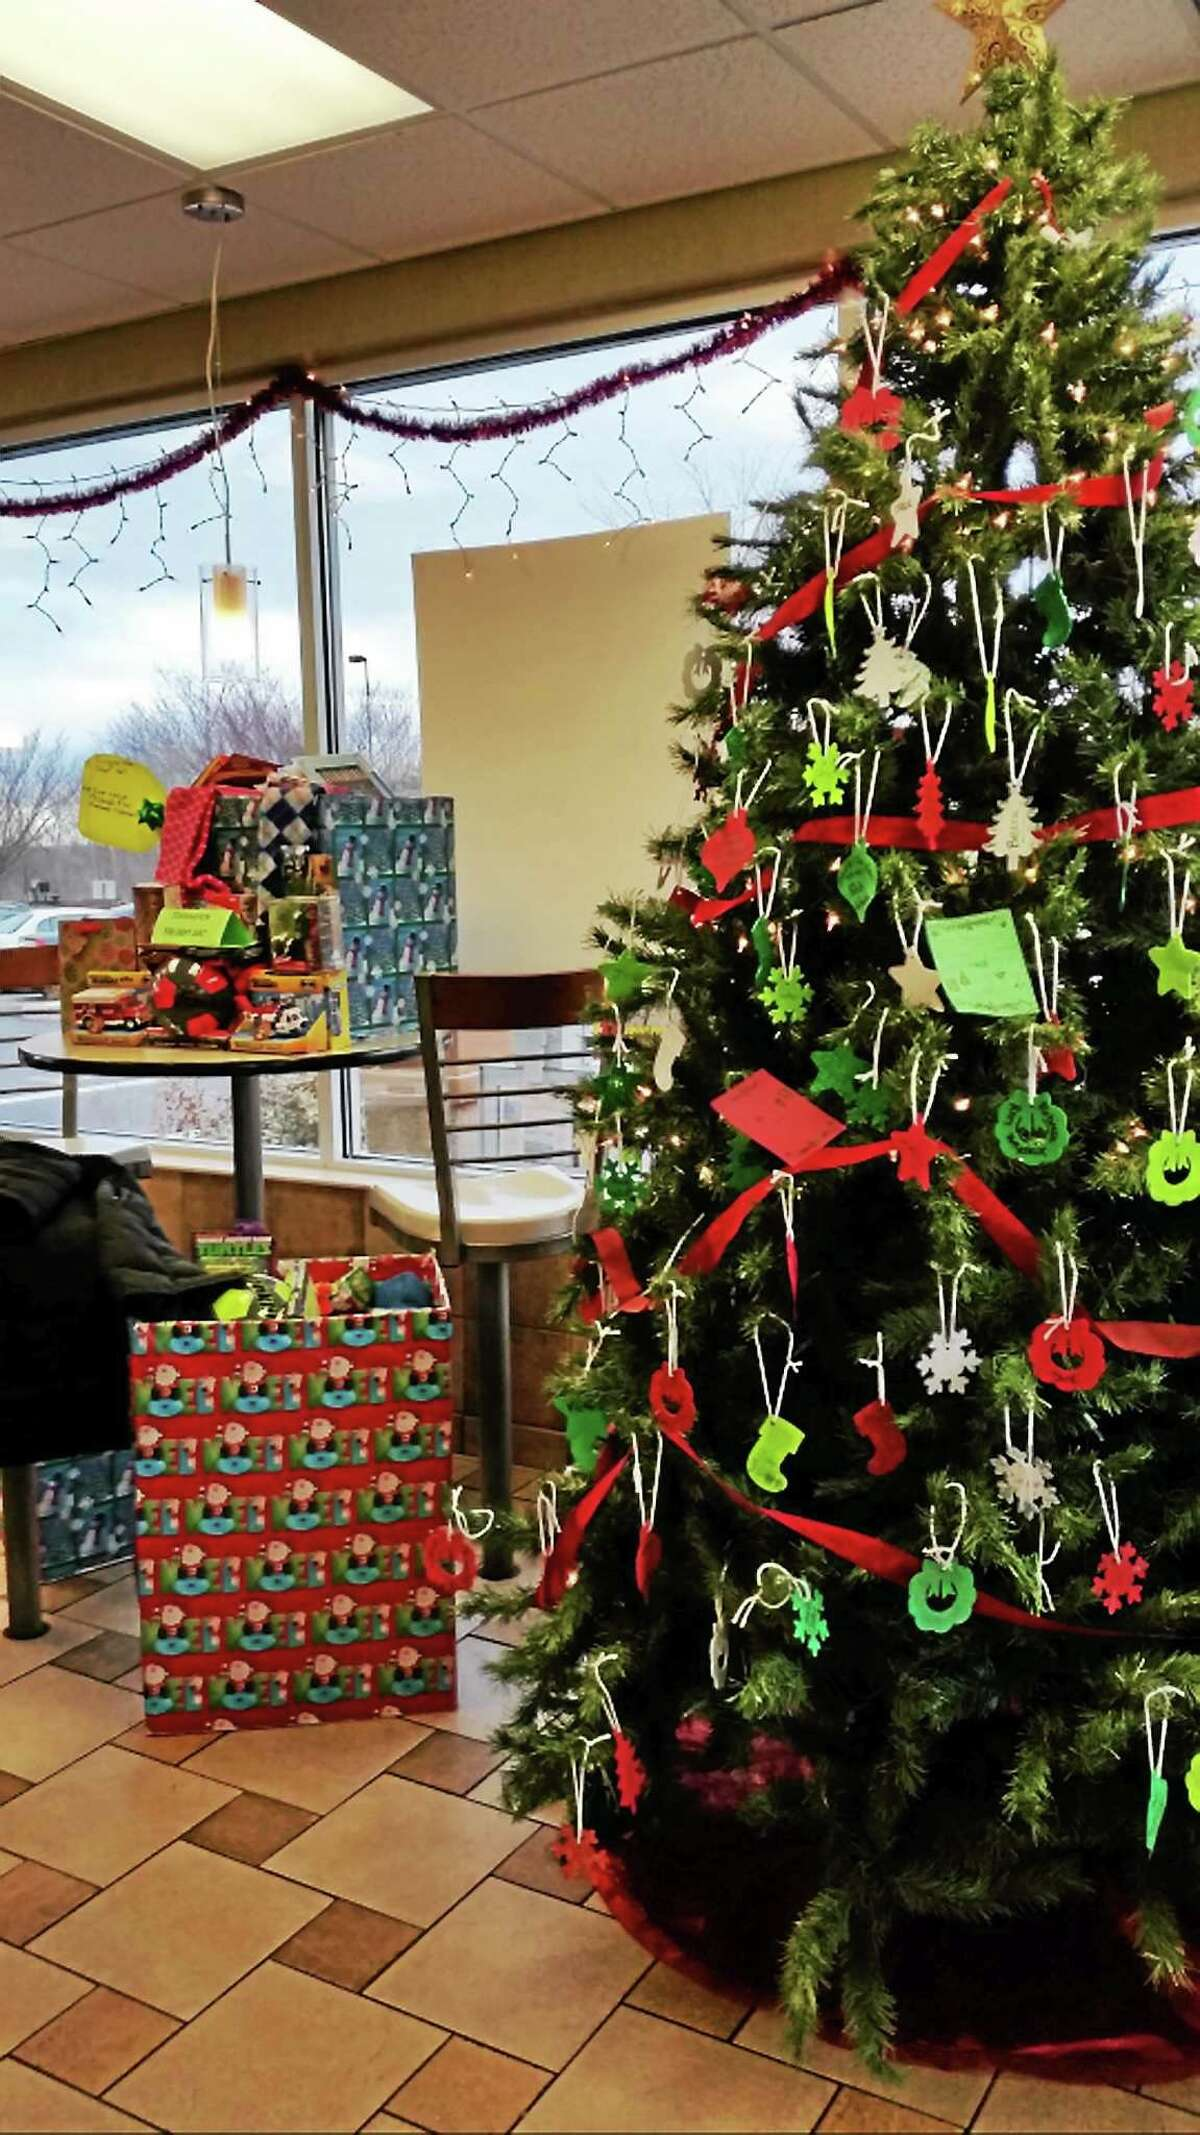 Amanda Webster/Register Citizen The Christmas tree at McDonald's in Torrington was decked out with ornaments handmade by employees. The ornaments were sold for $1 and the money was used to buy holiday gifts, which were then donated to local charities during a ceremony on Thursday, Dec. 18, 2014.